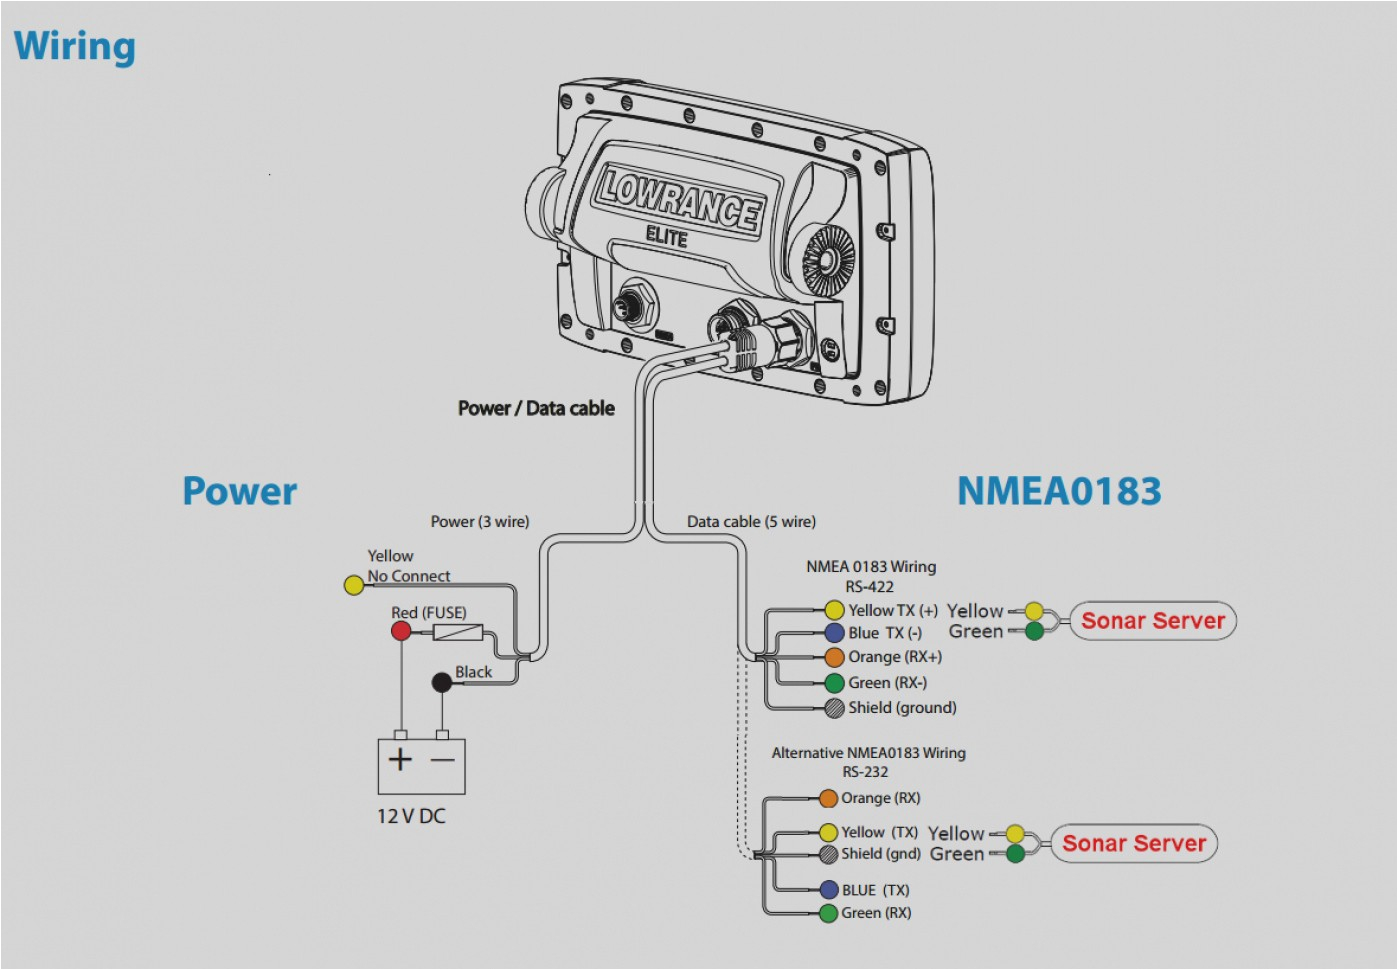 pin nema plug diagram on pinterest data schematic diagram lowrance nmea 0183 wiring pictures to pin